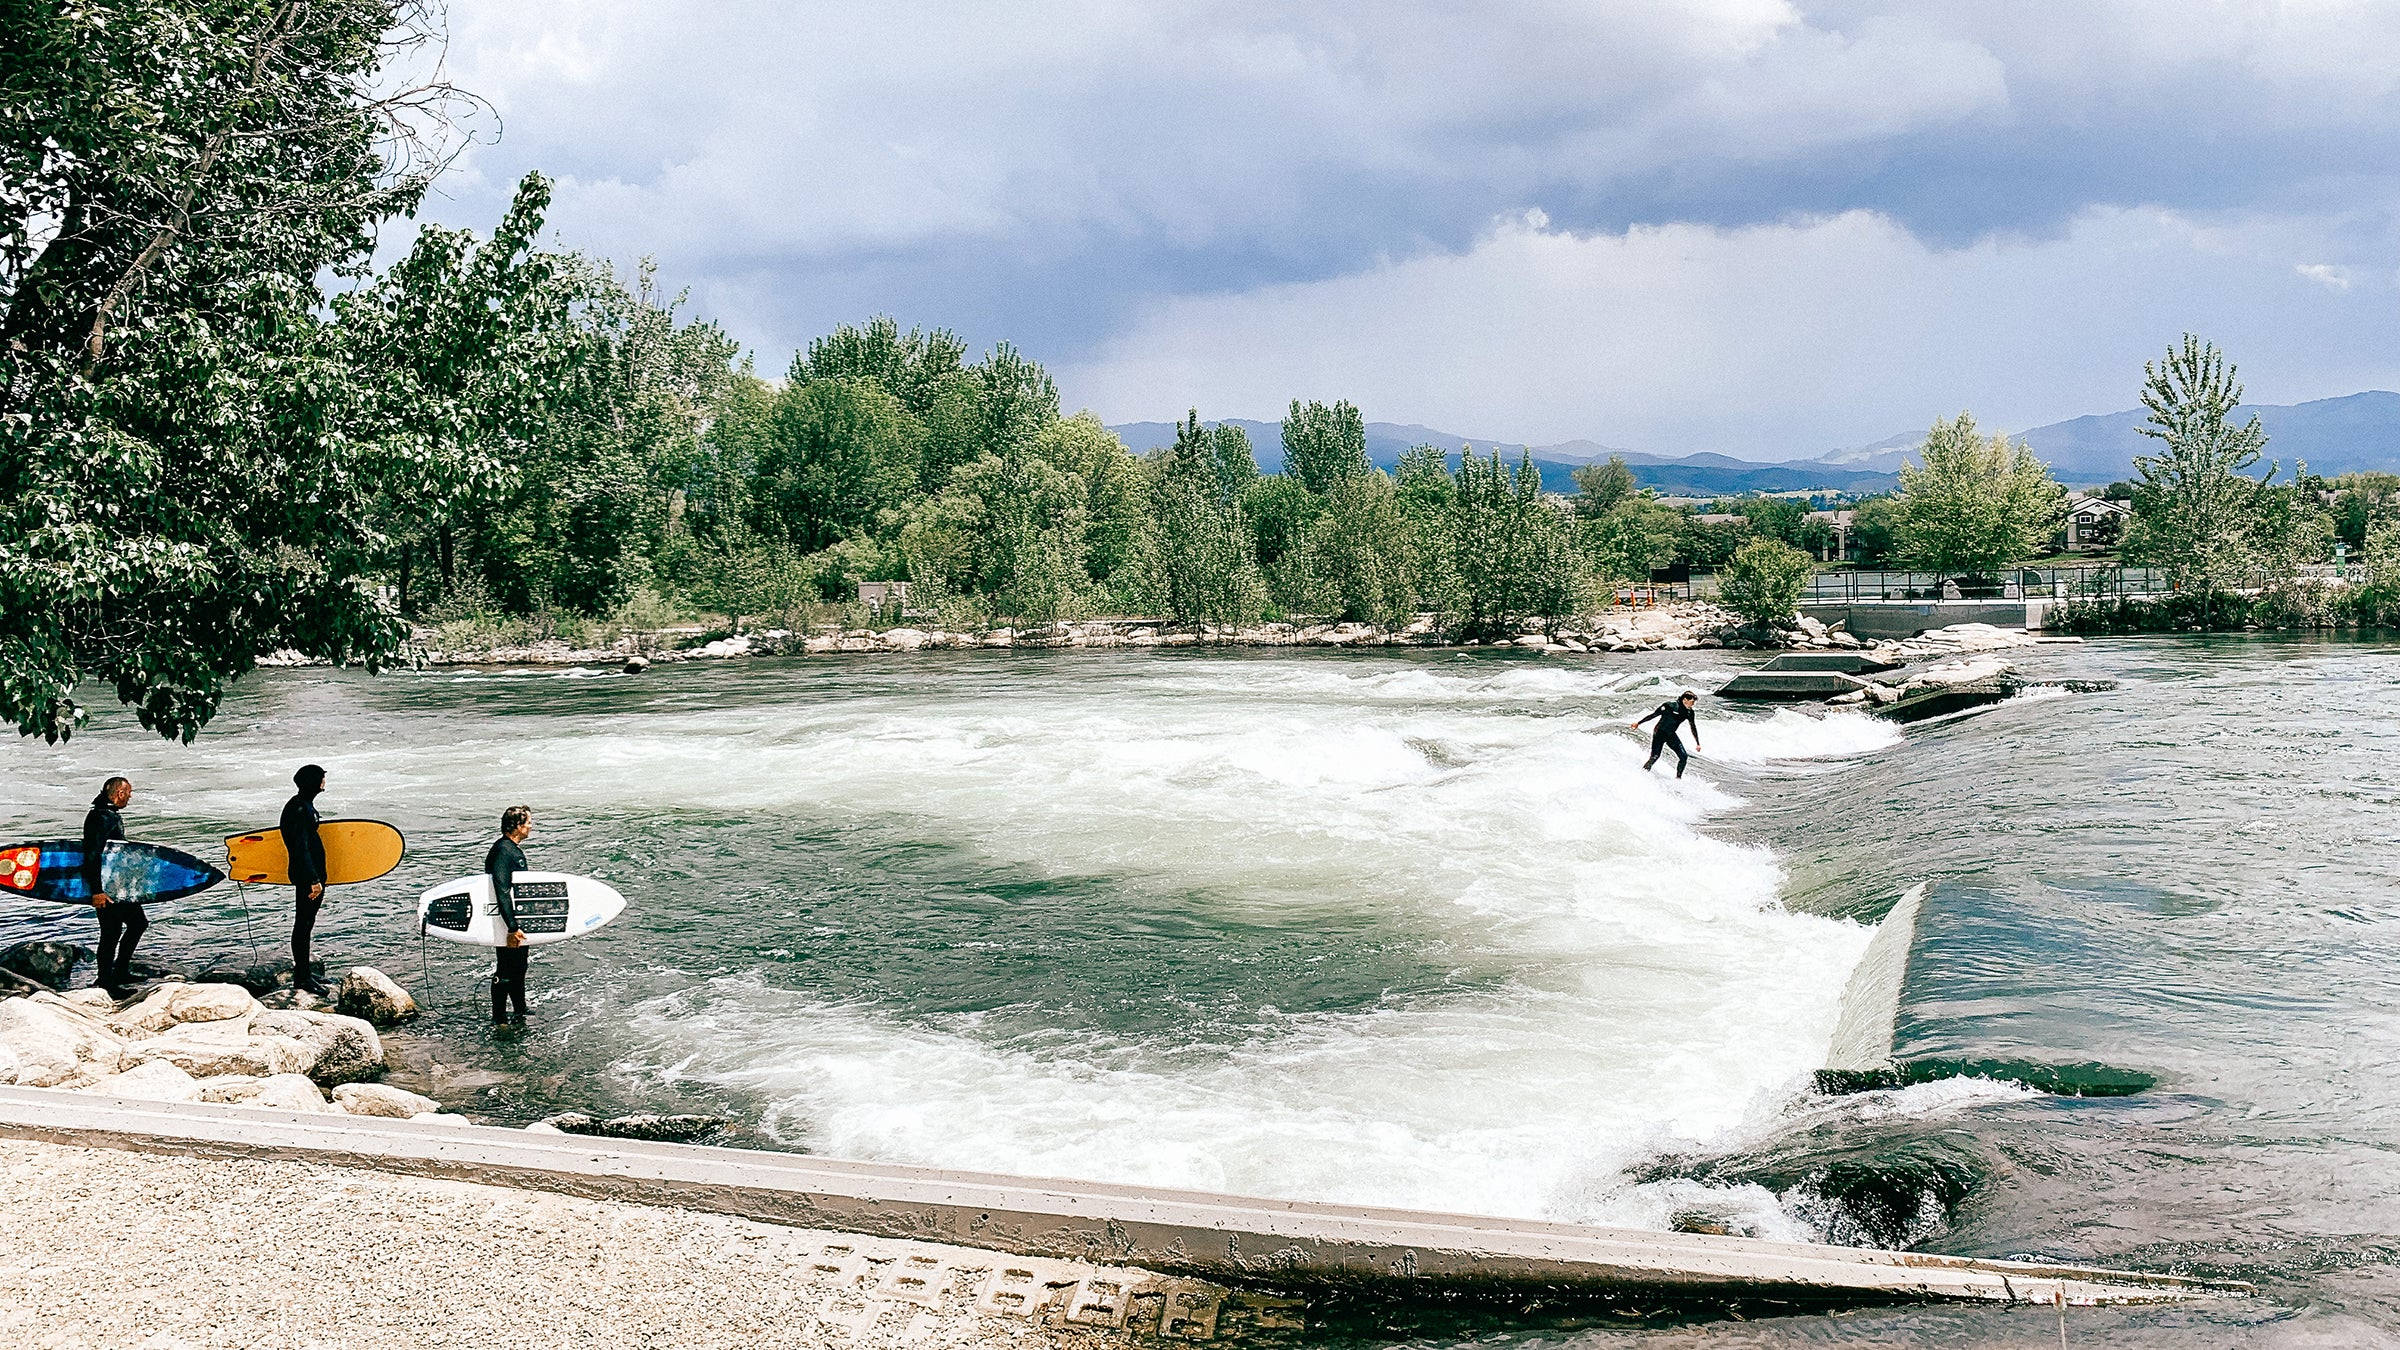 Surfing at Boise Whitewater Park